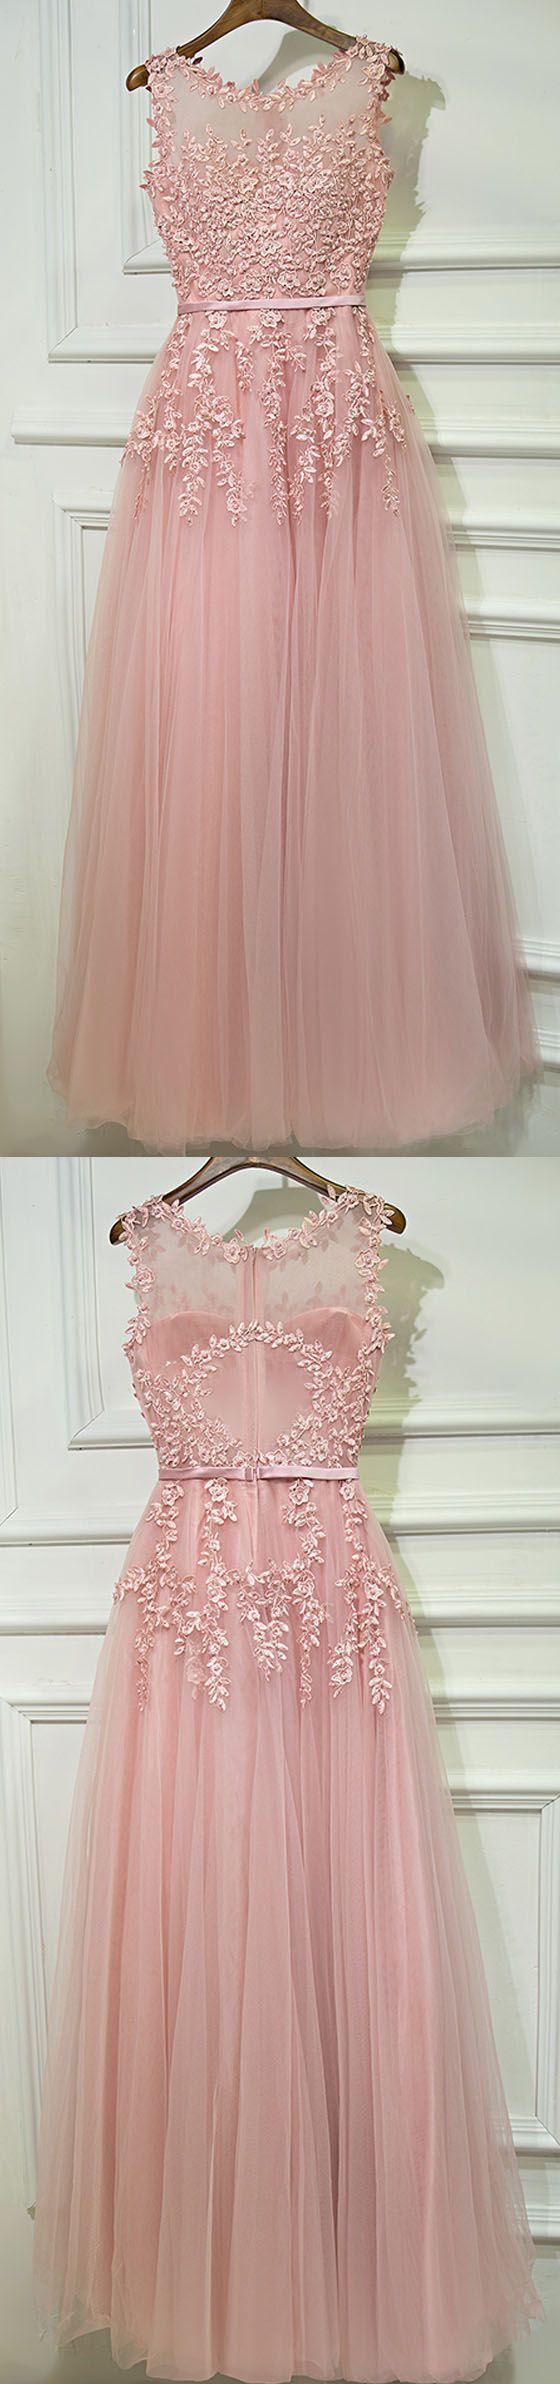 Formal Blush Pink A Line Cheap Long Prom Dresses, BGP001 #promdress #prom